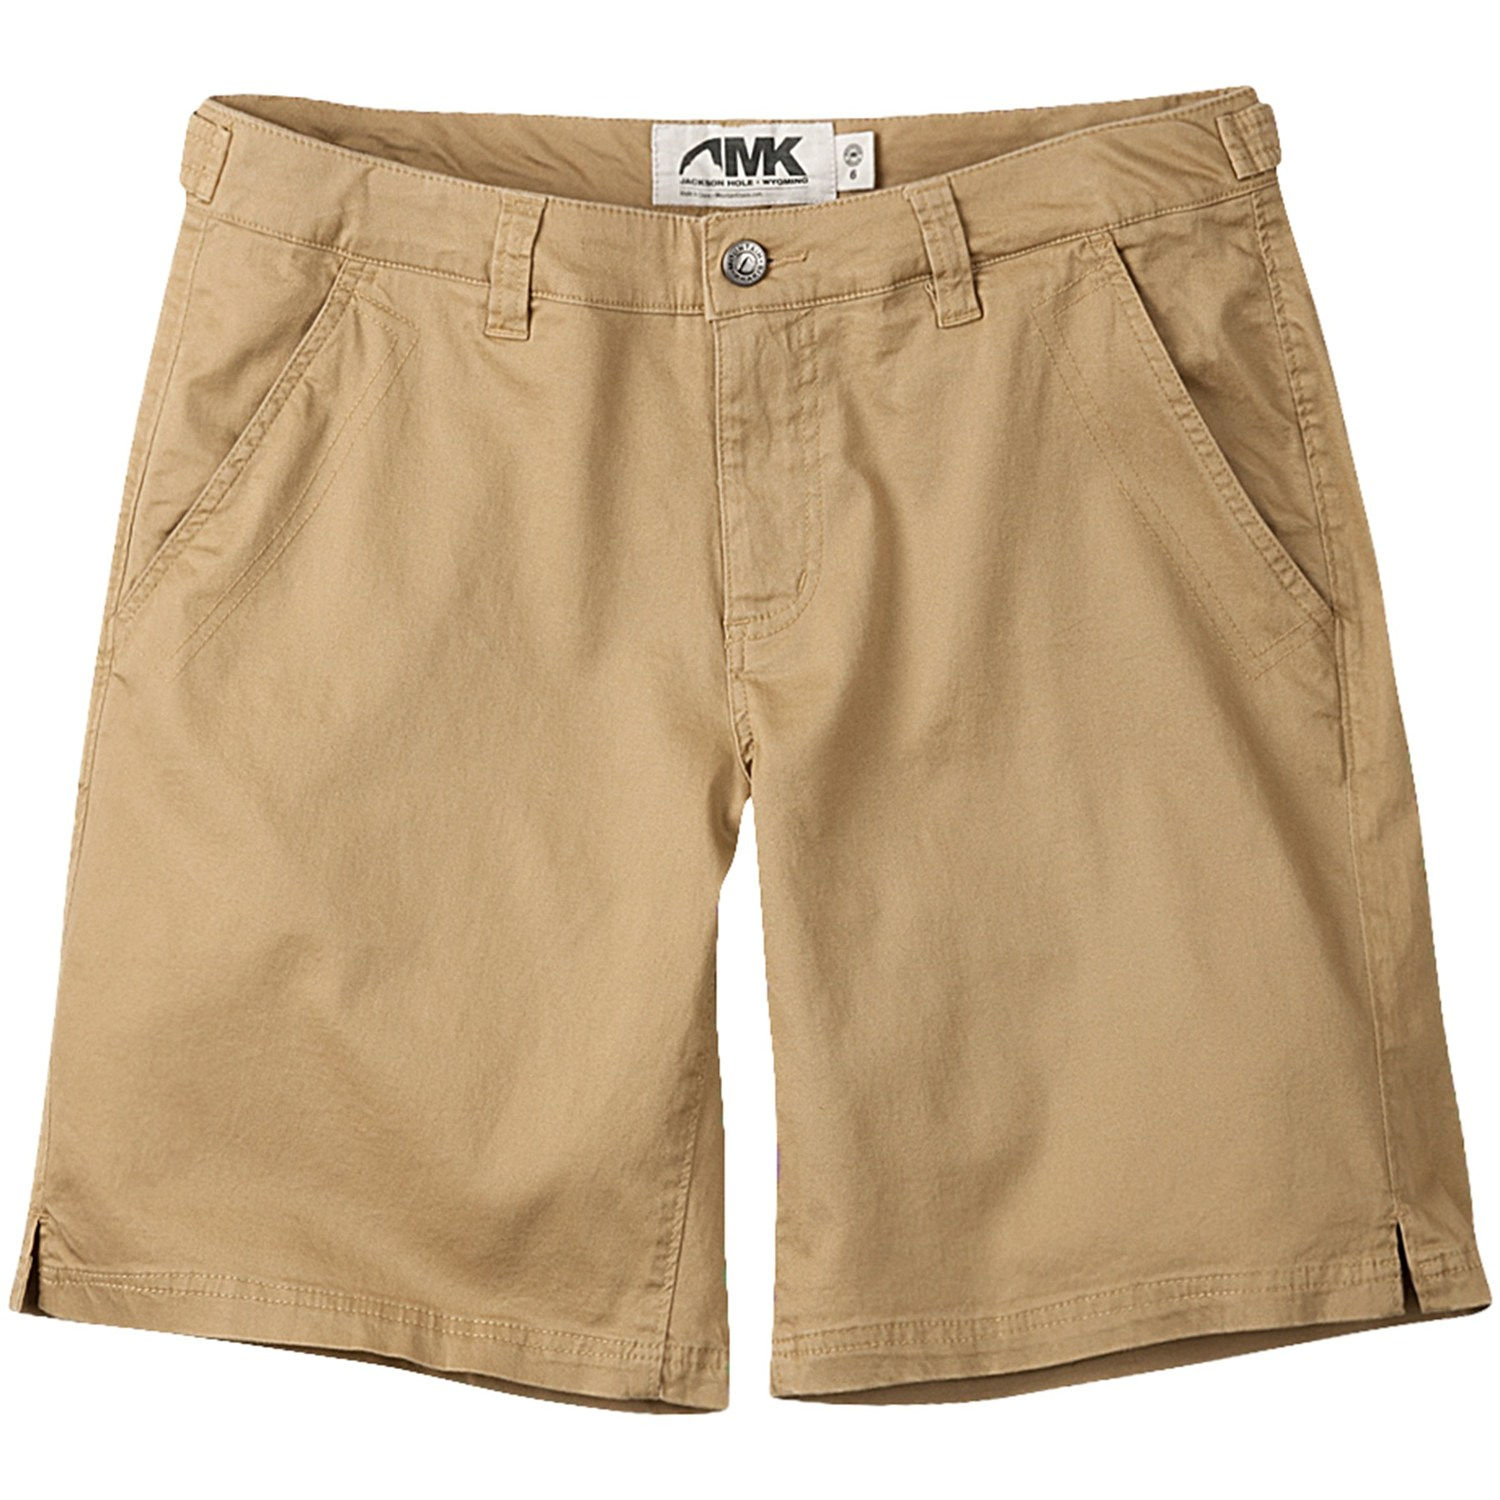 Comfortable Khaki Shorts For Women | Camo Shorts